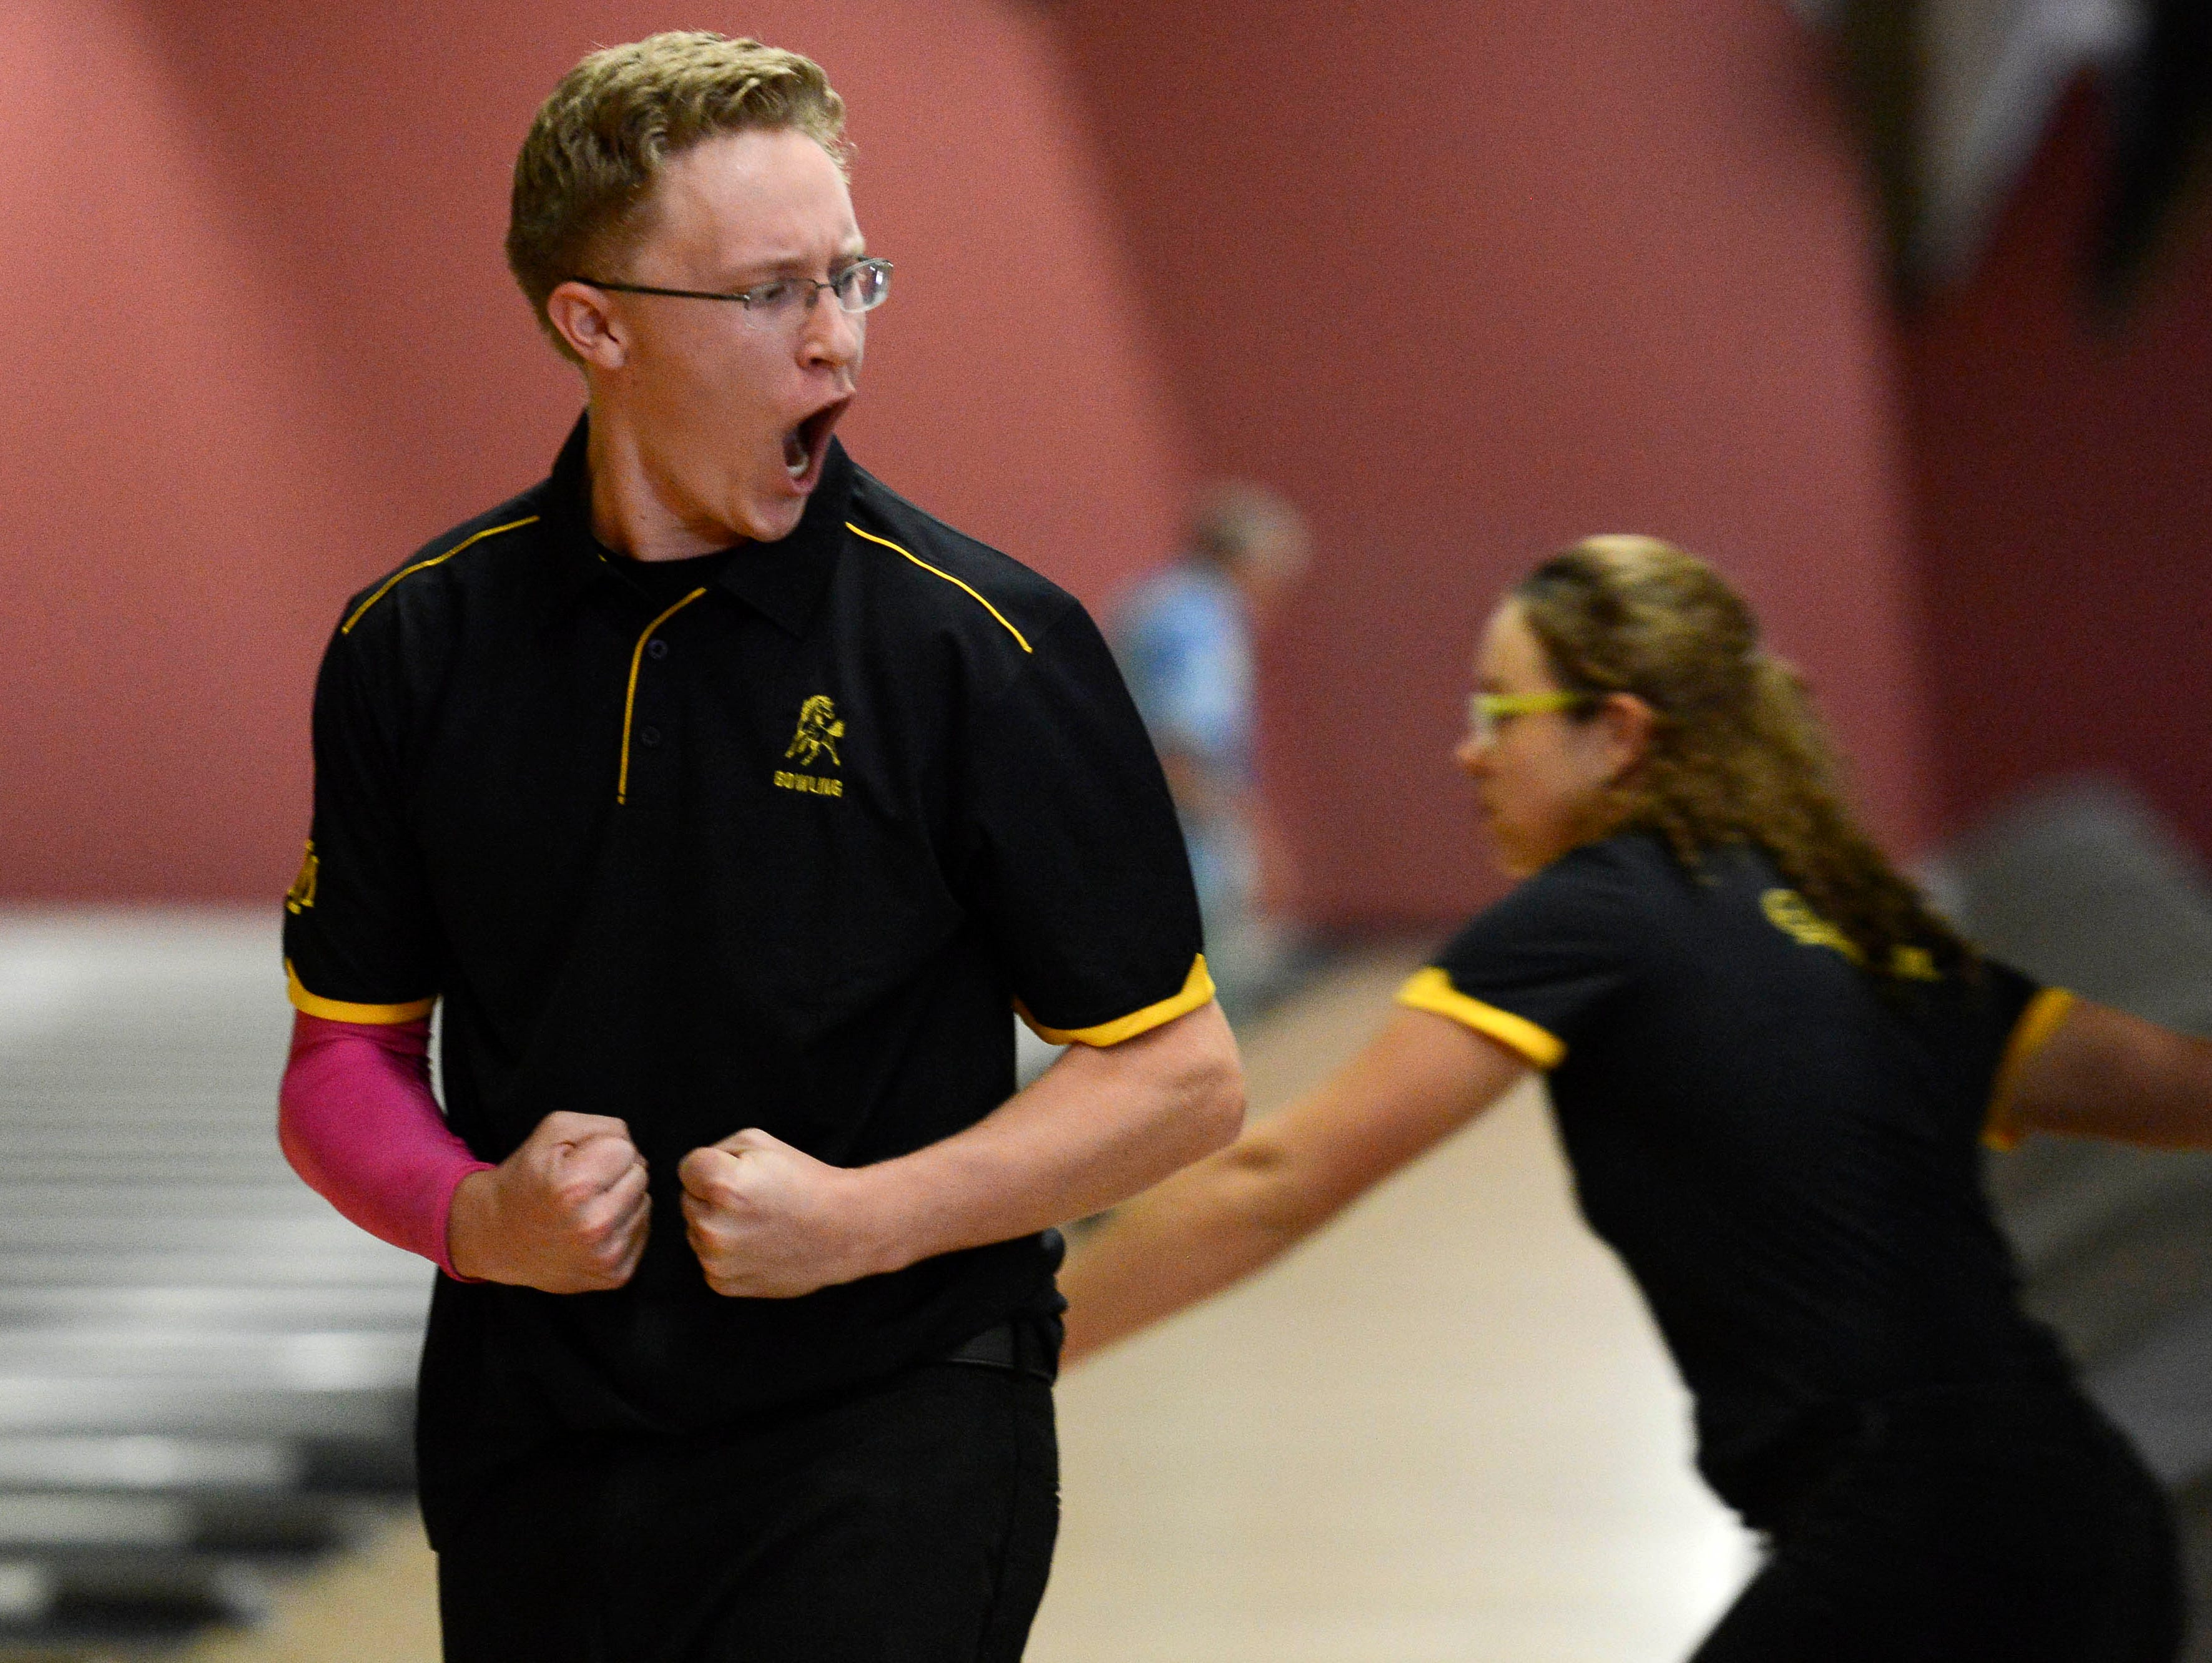 Connor Chambers of Merritt Island reacts to making a shot during a match earlier this season.